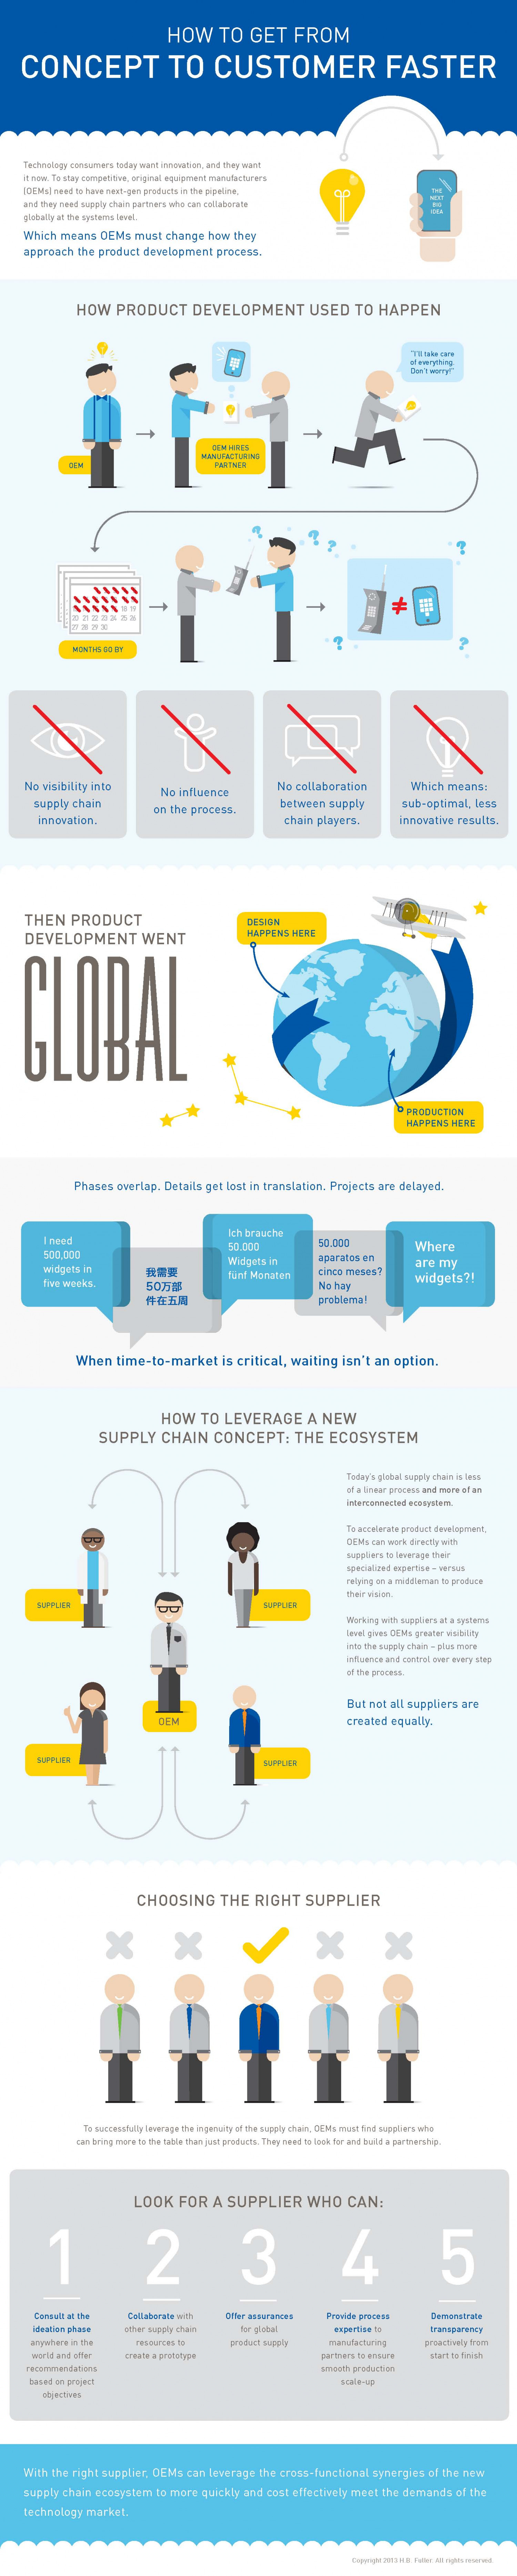 How To Get From Concept to Customer Faster In Electronics Materials Manufacturing Infographic